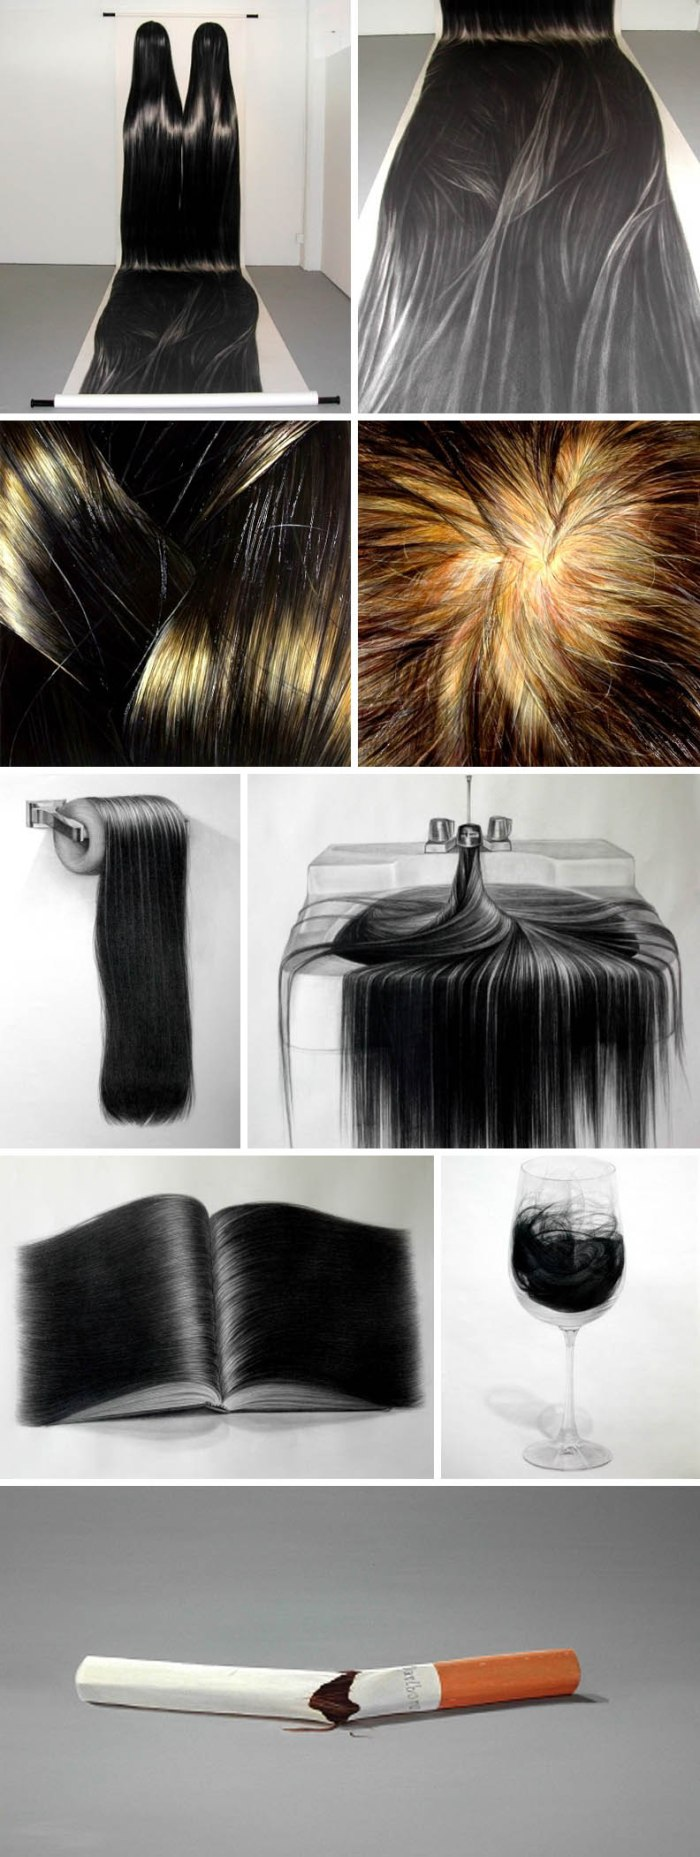 amazing realistic charcoal drawings and oil paintings of hair by Hong Chun Zhang, Chinese contemporary art